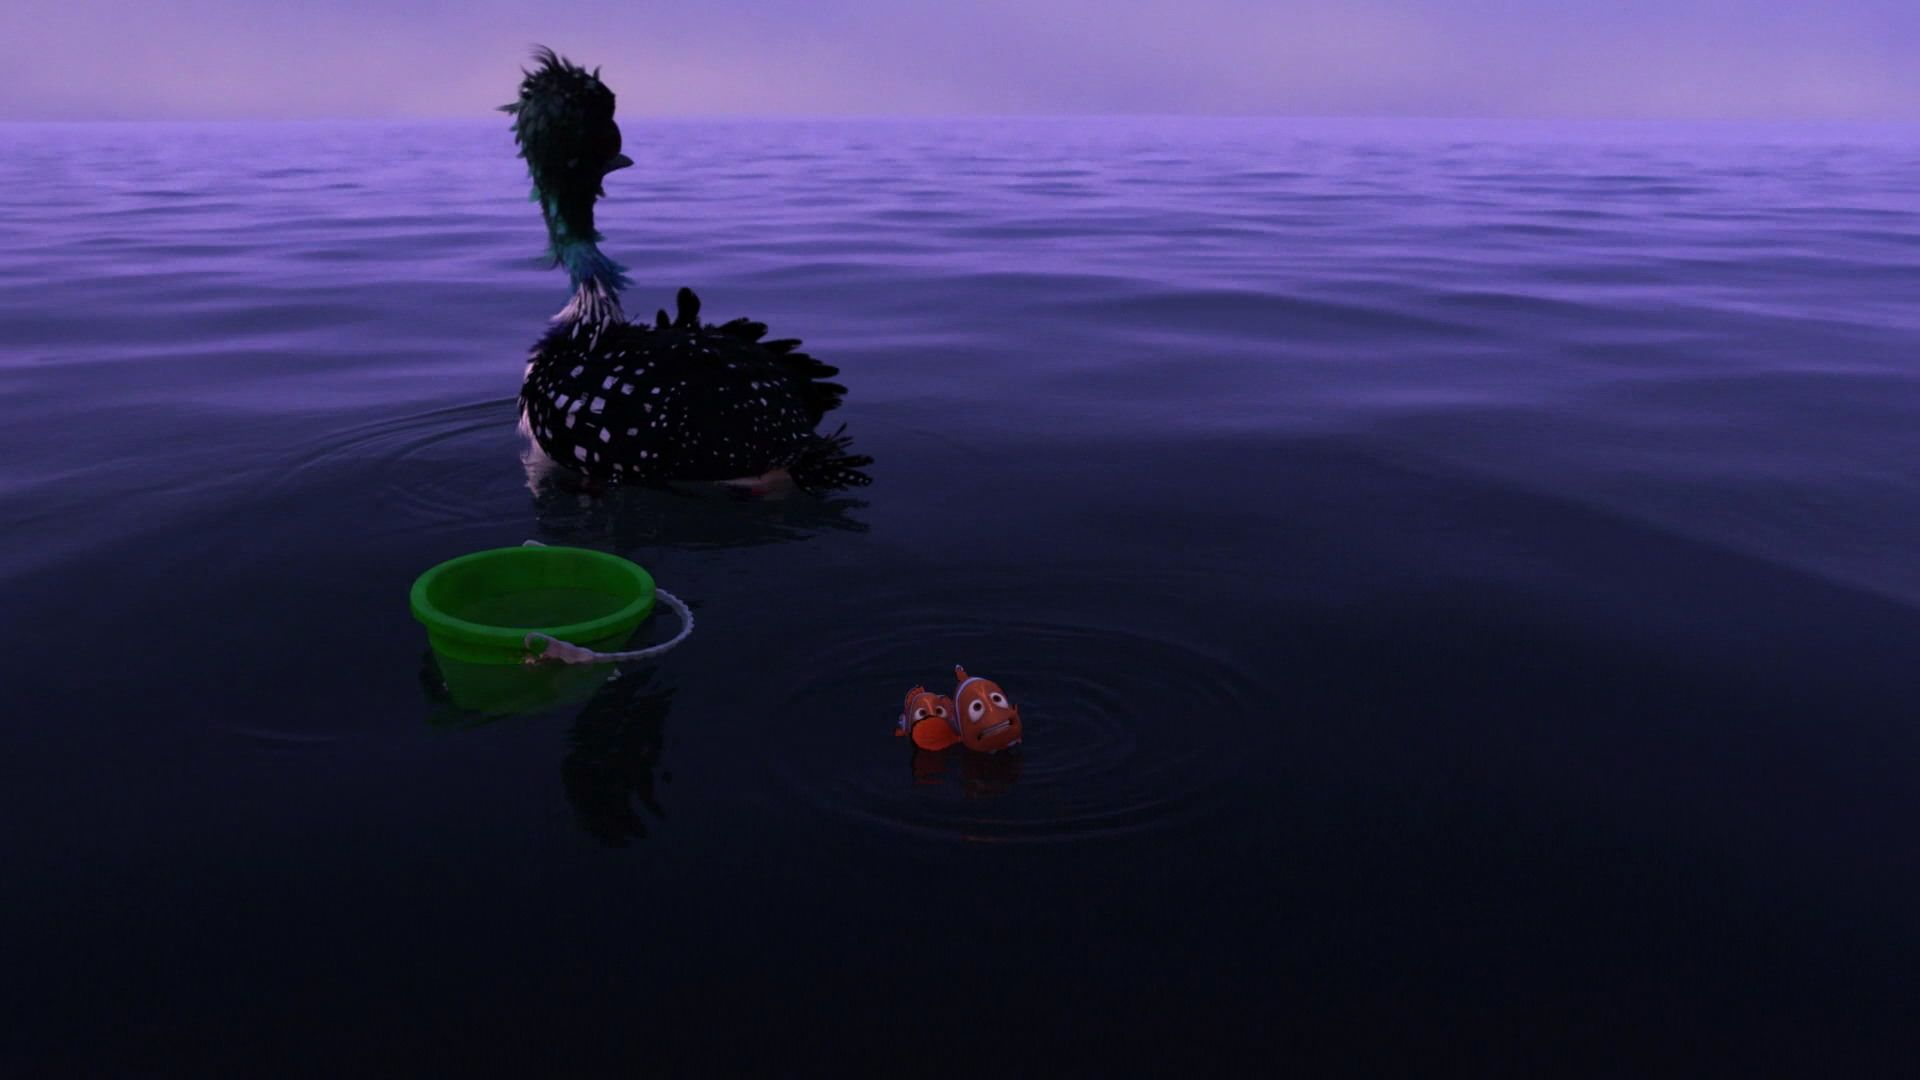 Capspictures 201 6 Finding Dory Full Finding Dory Disneyscreencaps